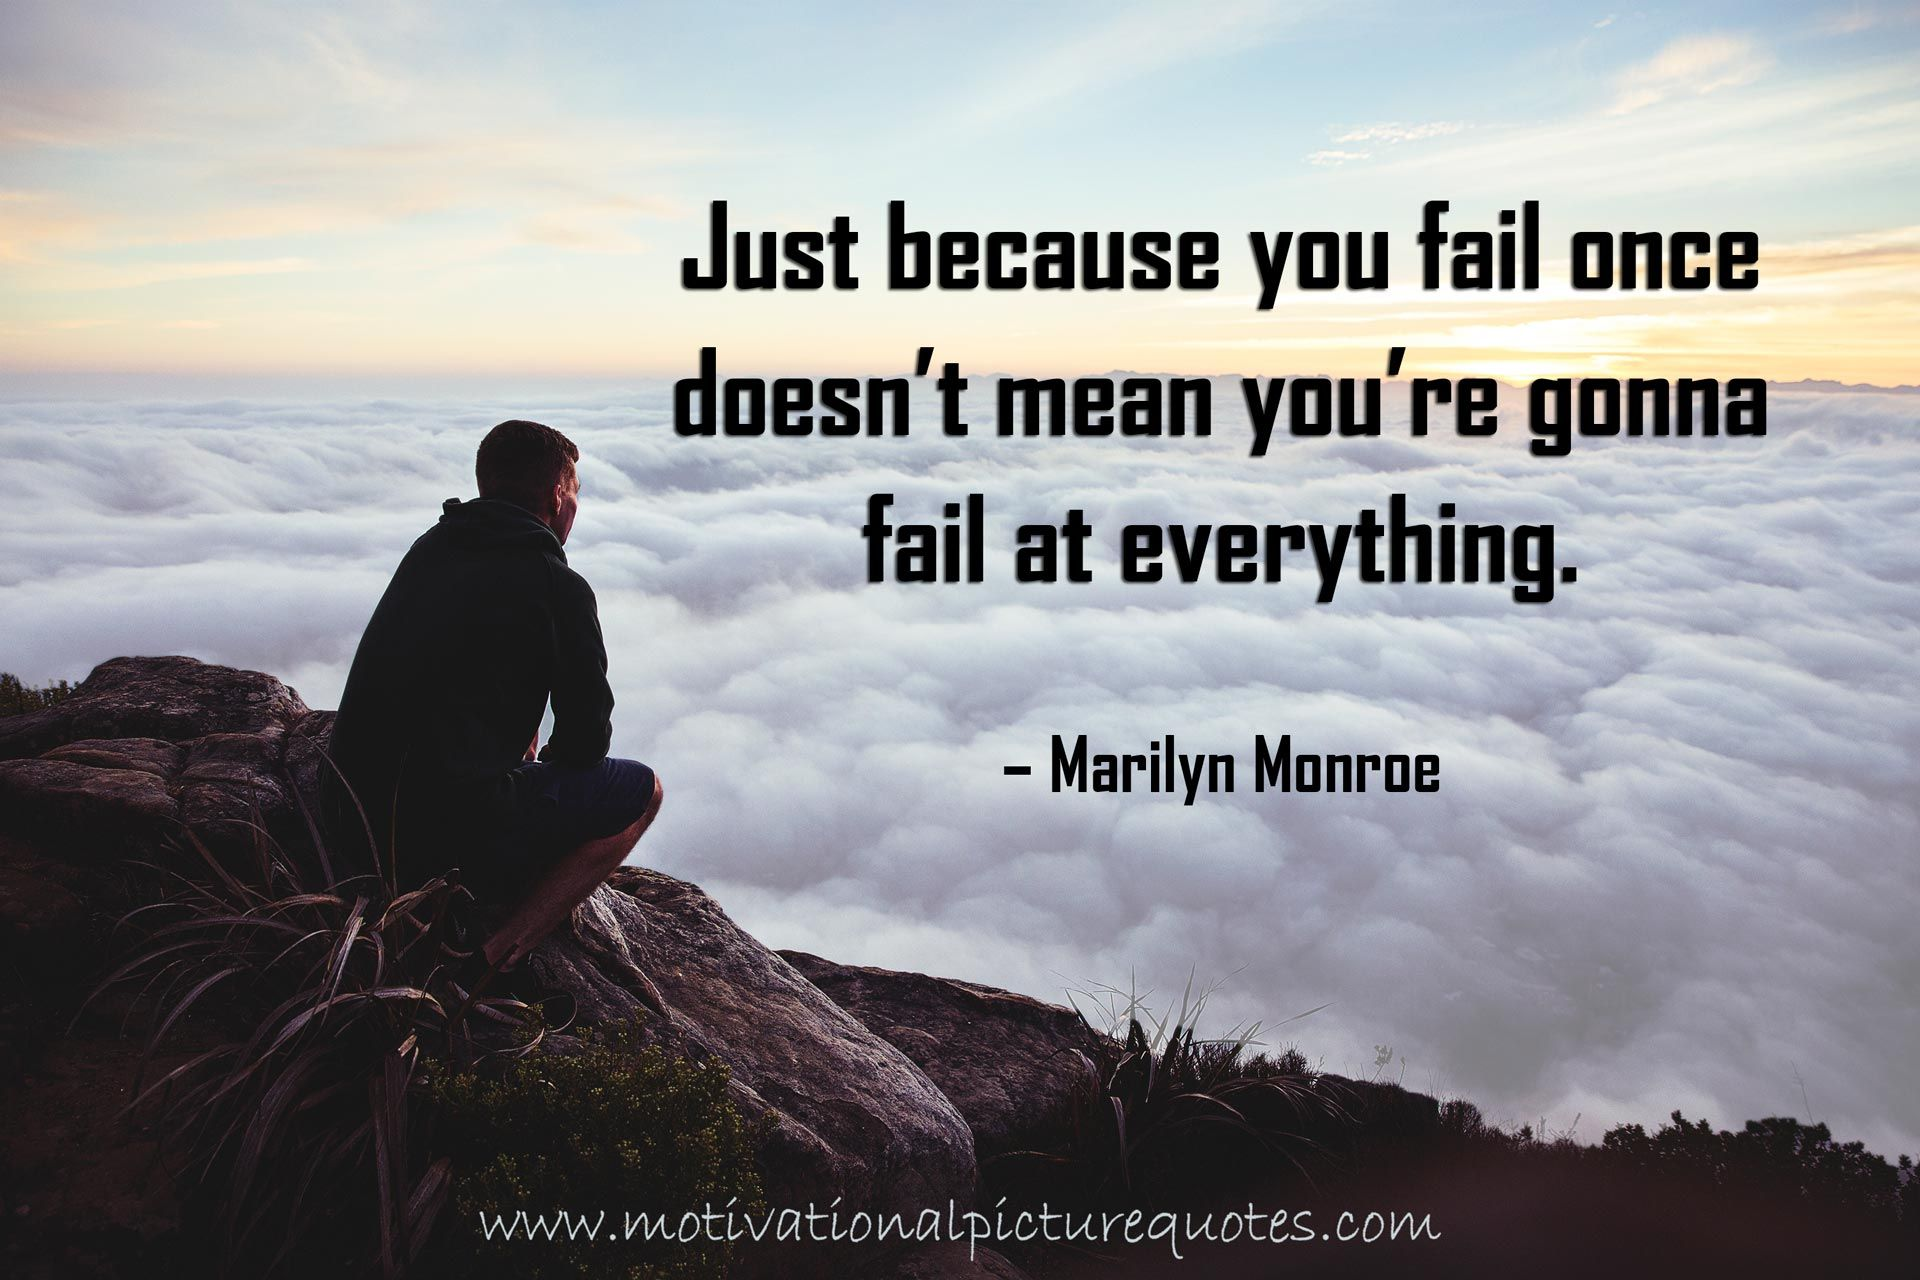 Inspirational Quotes About Overcoming Failure: Best Overcoming Failure Quotes Images For Free. These